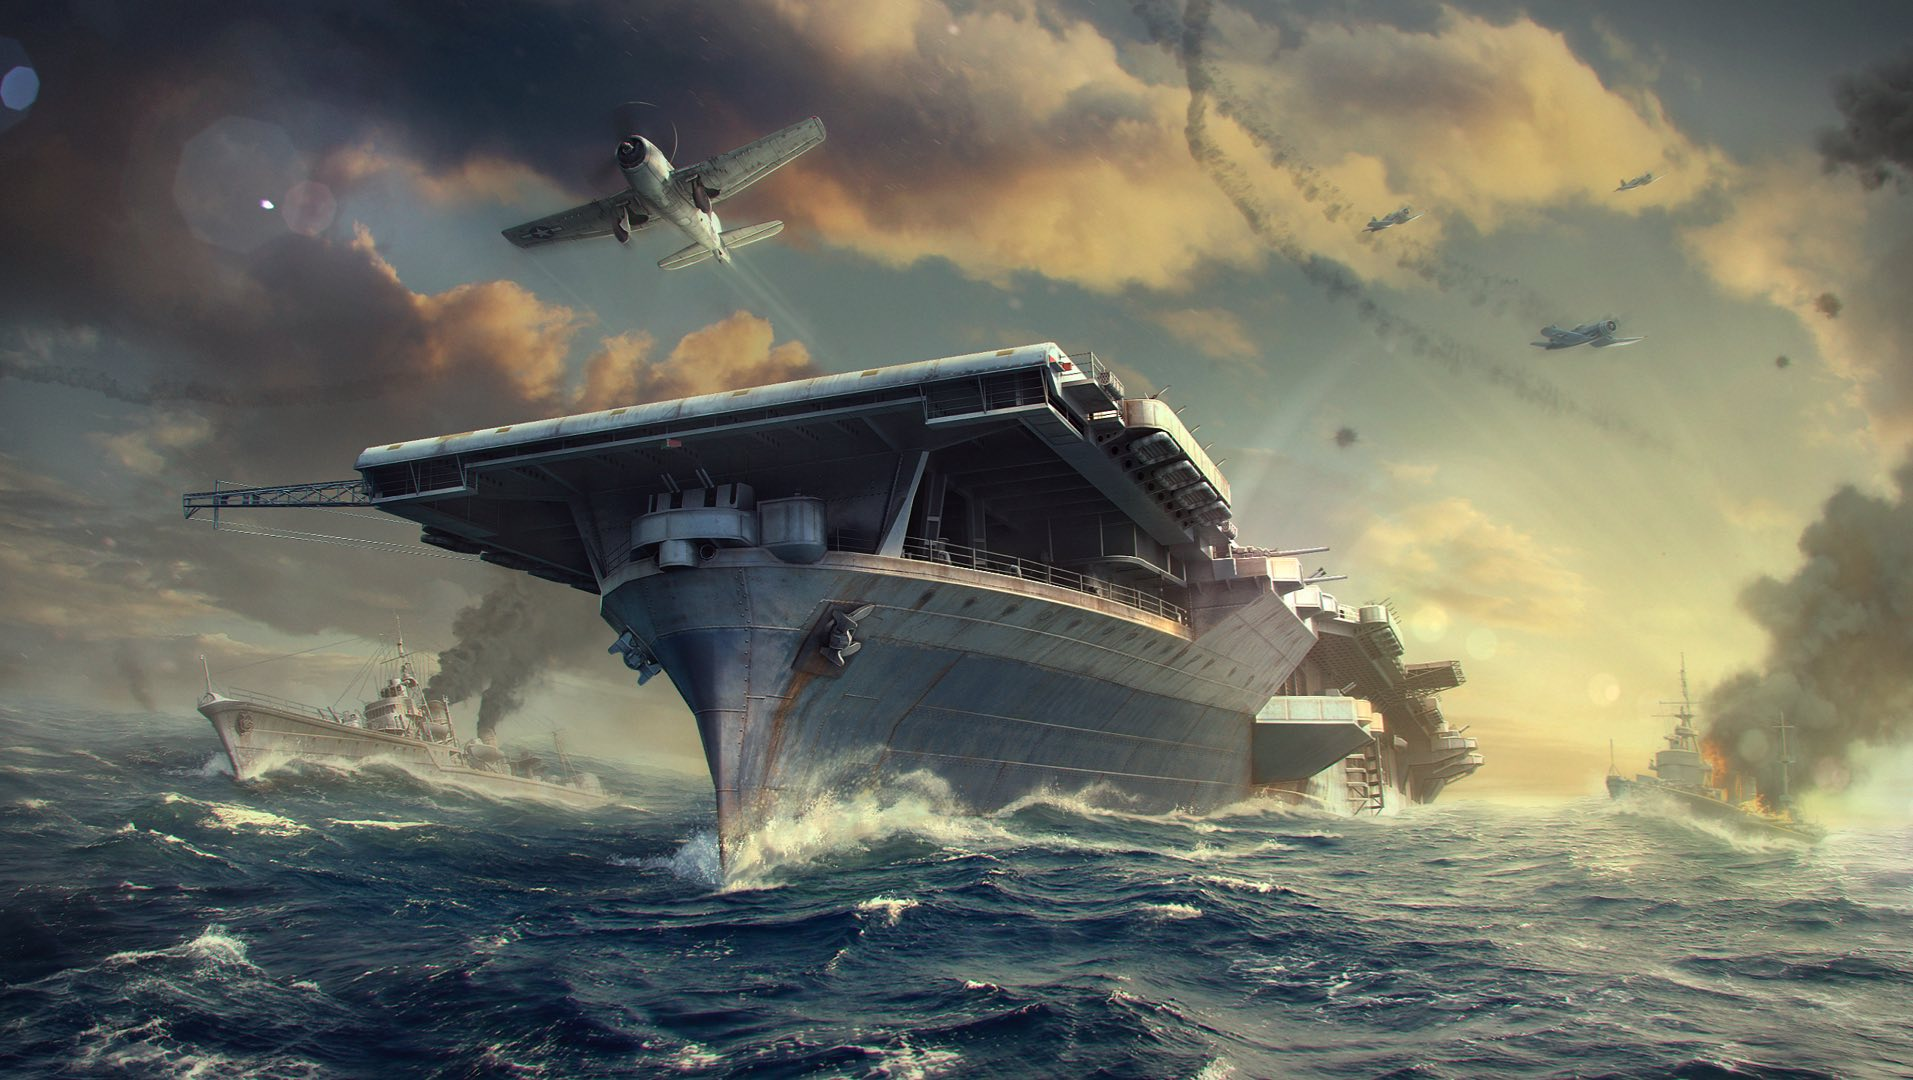 World of Warships aims high with new aircraft carrier update | PC Gamer